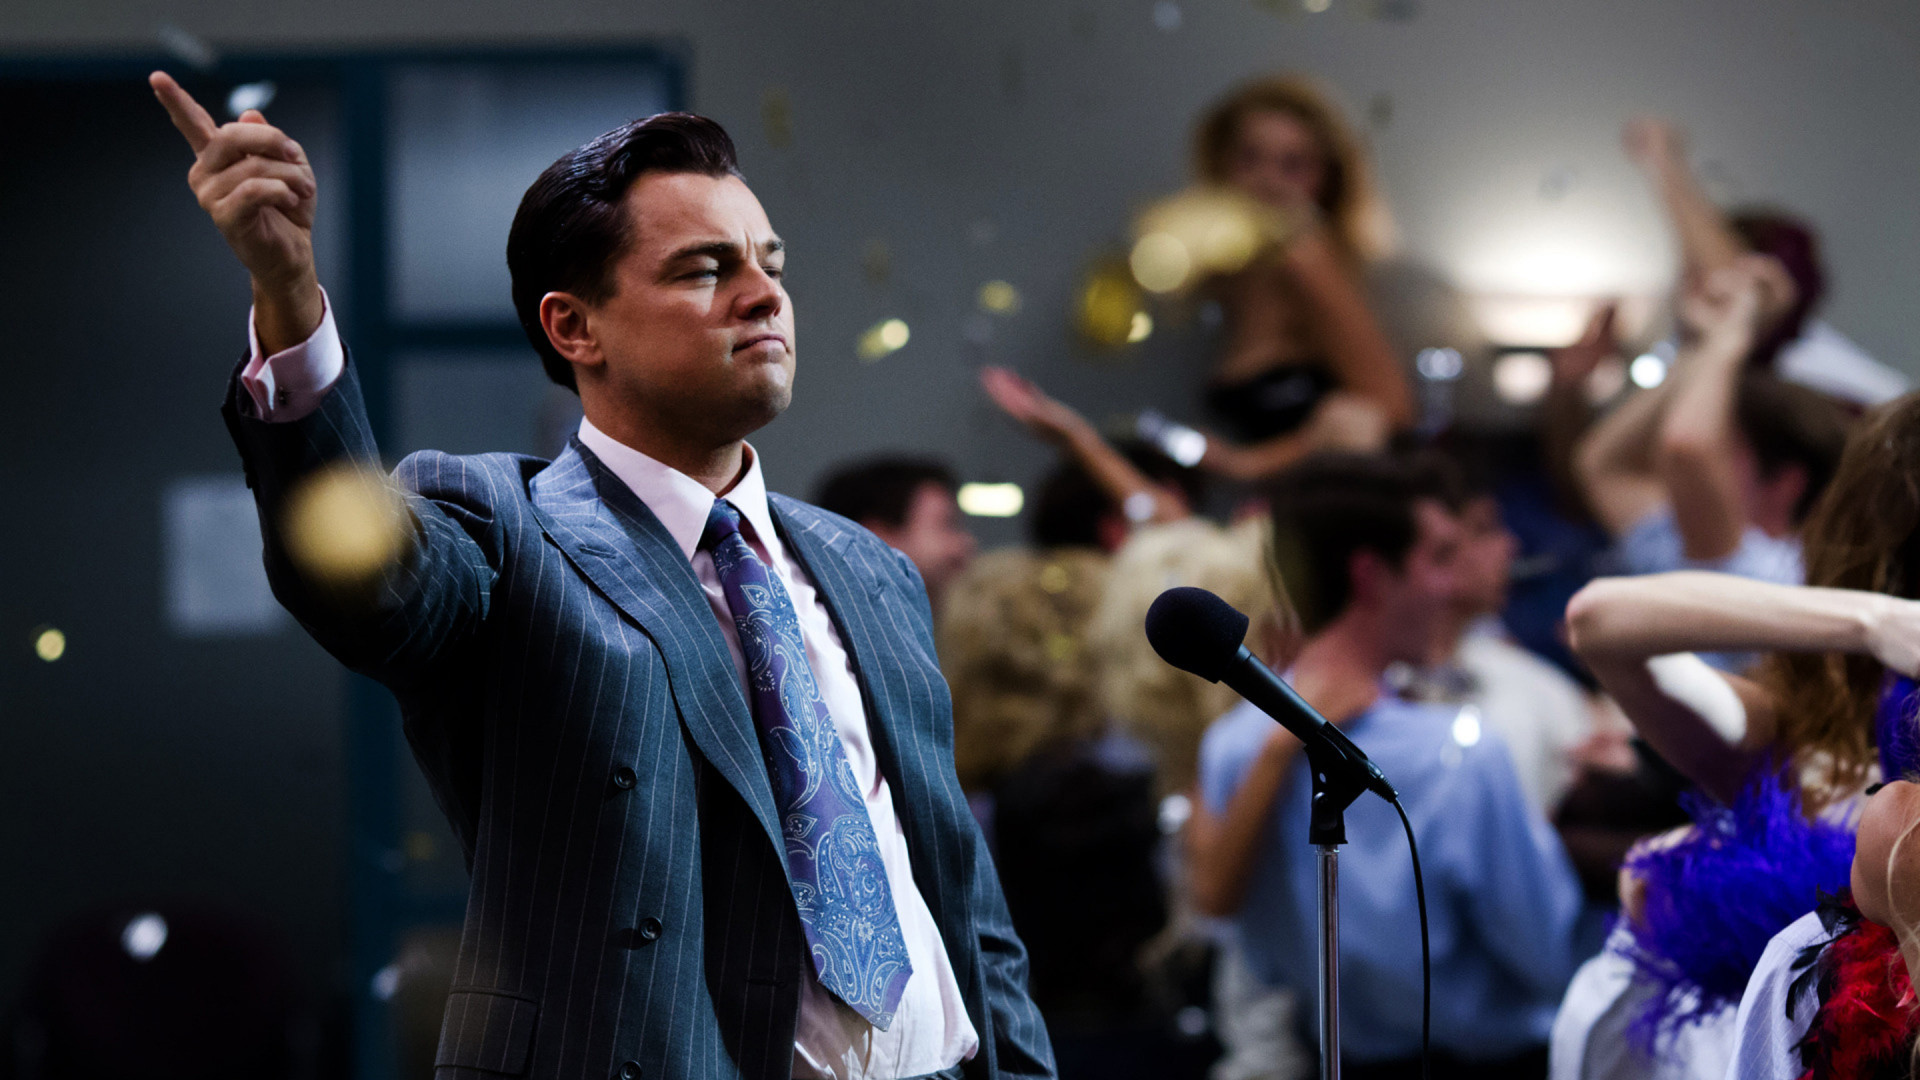 1920x1080  Wallpaper the wolf of wall street, leonardo dicaprio, jordan  belfort